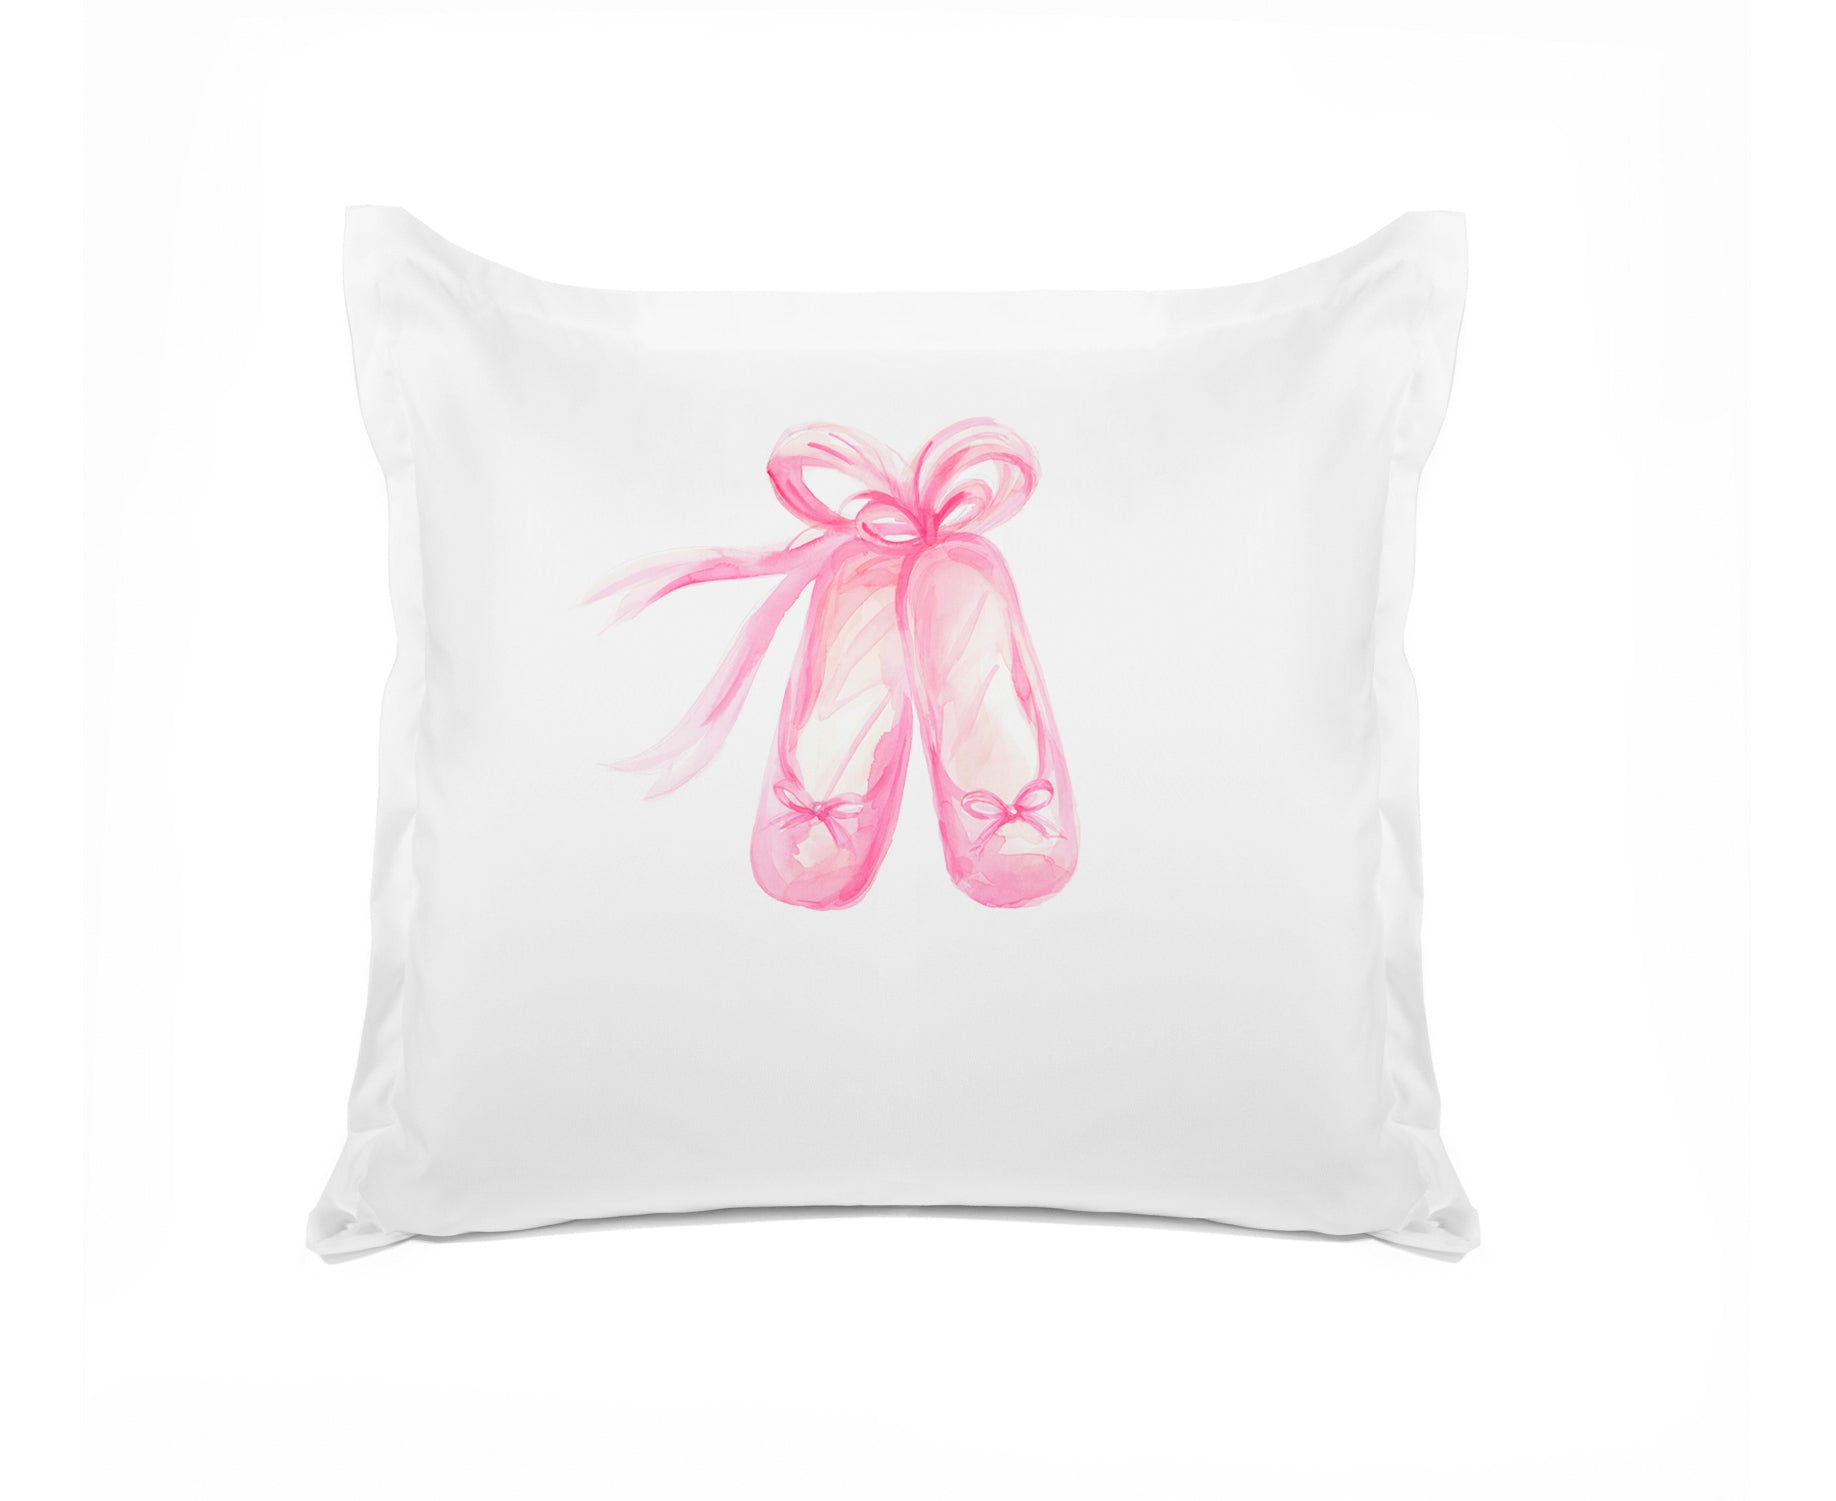 En Pointe Kids Personalized Euro Sham Di Lewis Kids Bedding, Ballerina Bedding